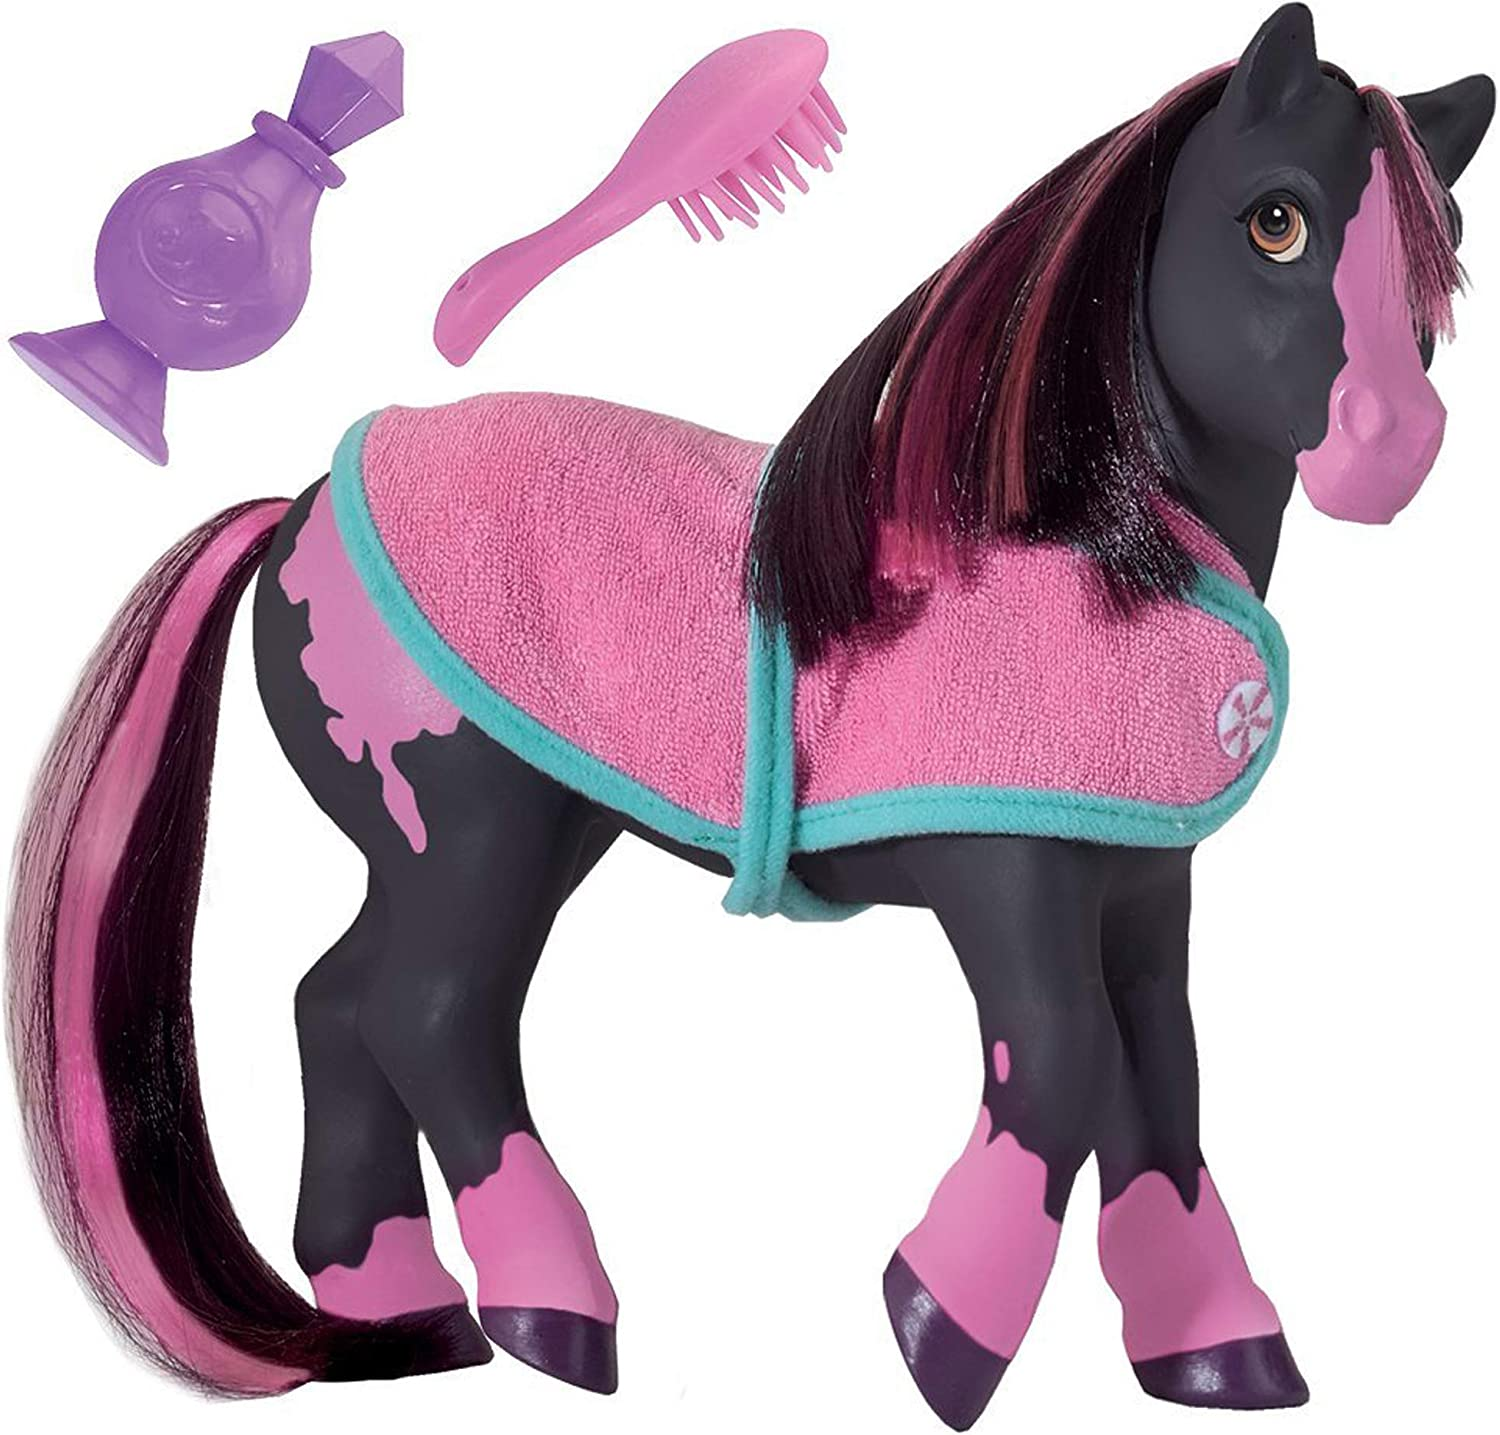 Breyer Horses Color Changing Bath Toy | Jasmine the Horse | Blac